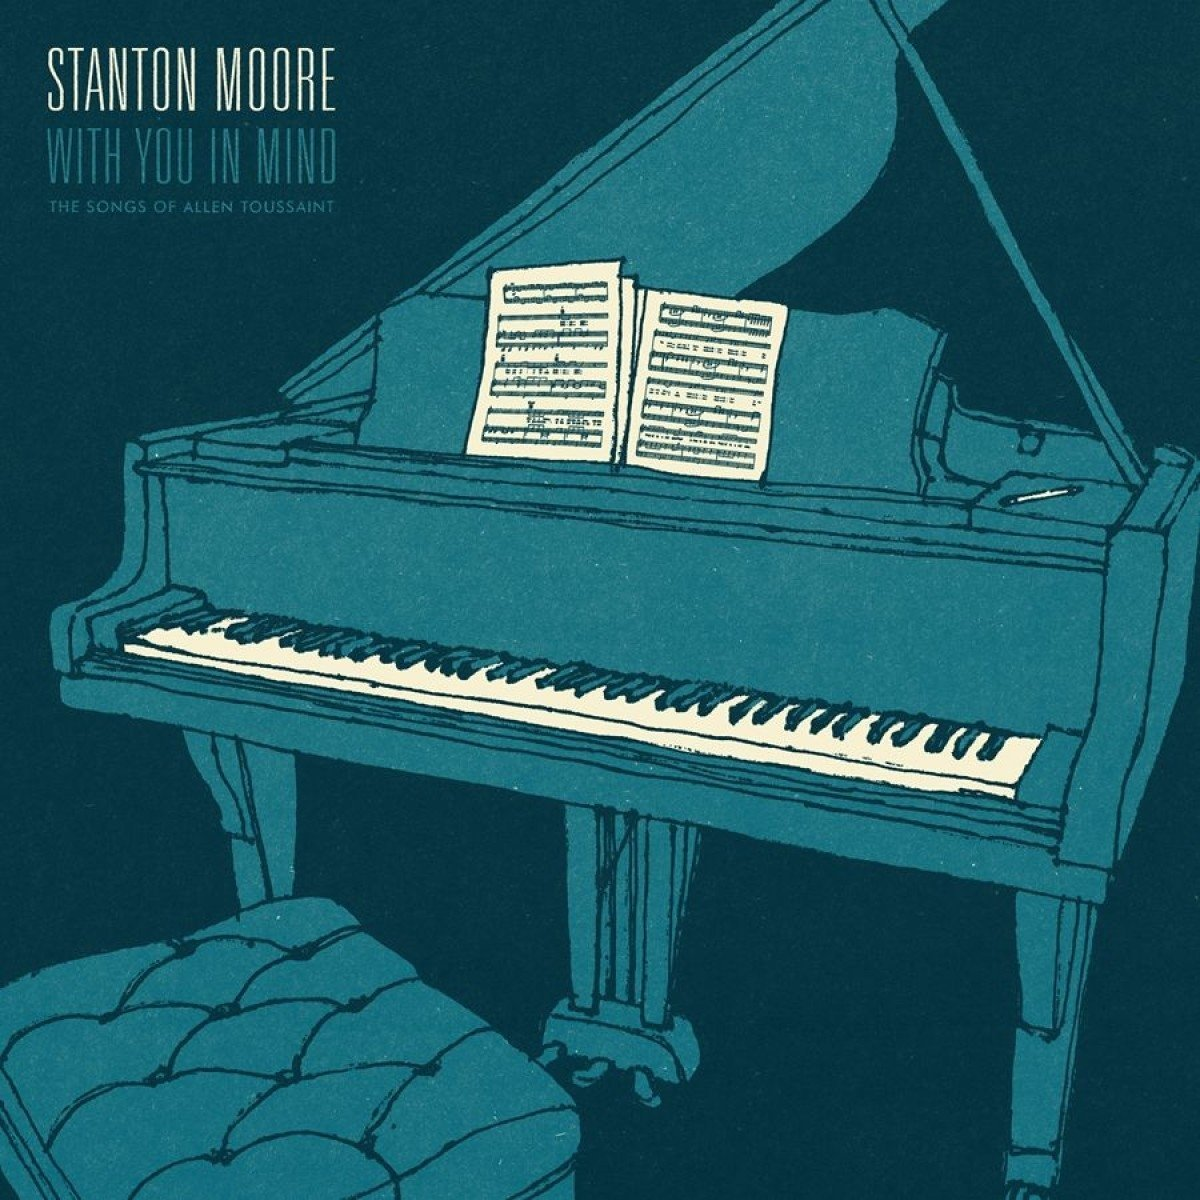 #StantonMoore&#39;s funky #AllenToussaint tribute album #WithYouInMind is out today. Read our review:  http://www. slantmagazine.com/music/review/s tanton-moore-with-you-in-mind &nbsp; …  #NewMusicFriday<br>http://pic.twitter.com/8McjEuVtjh